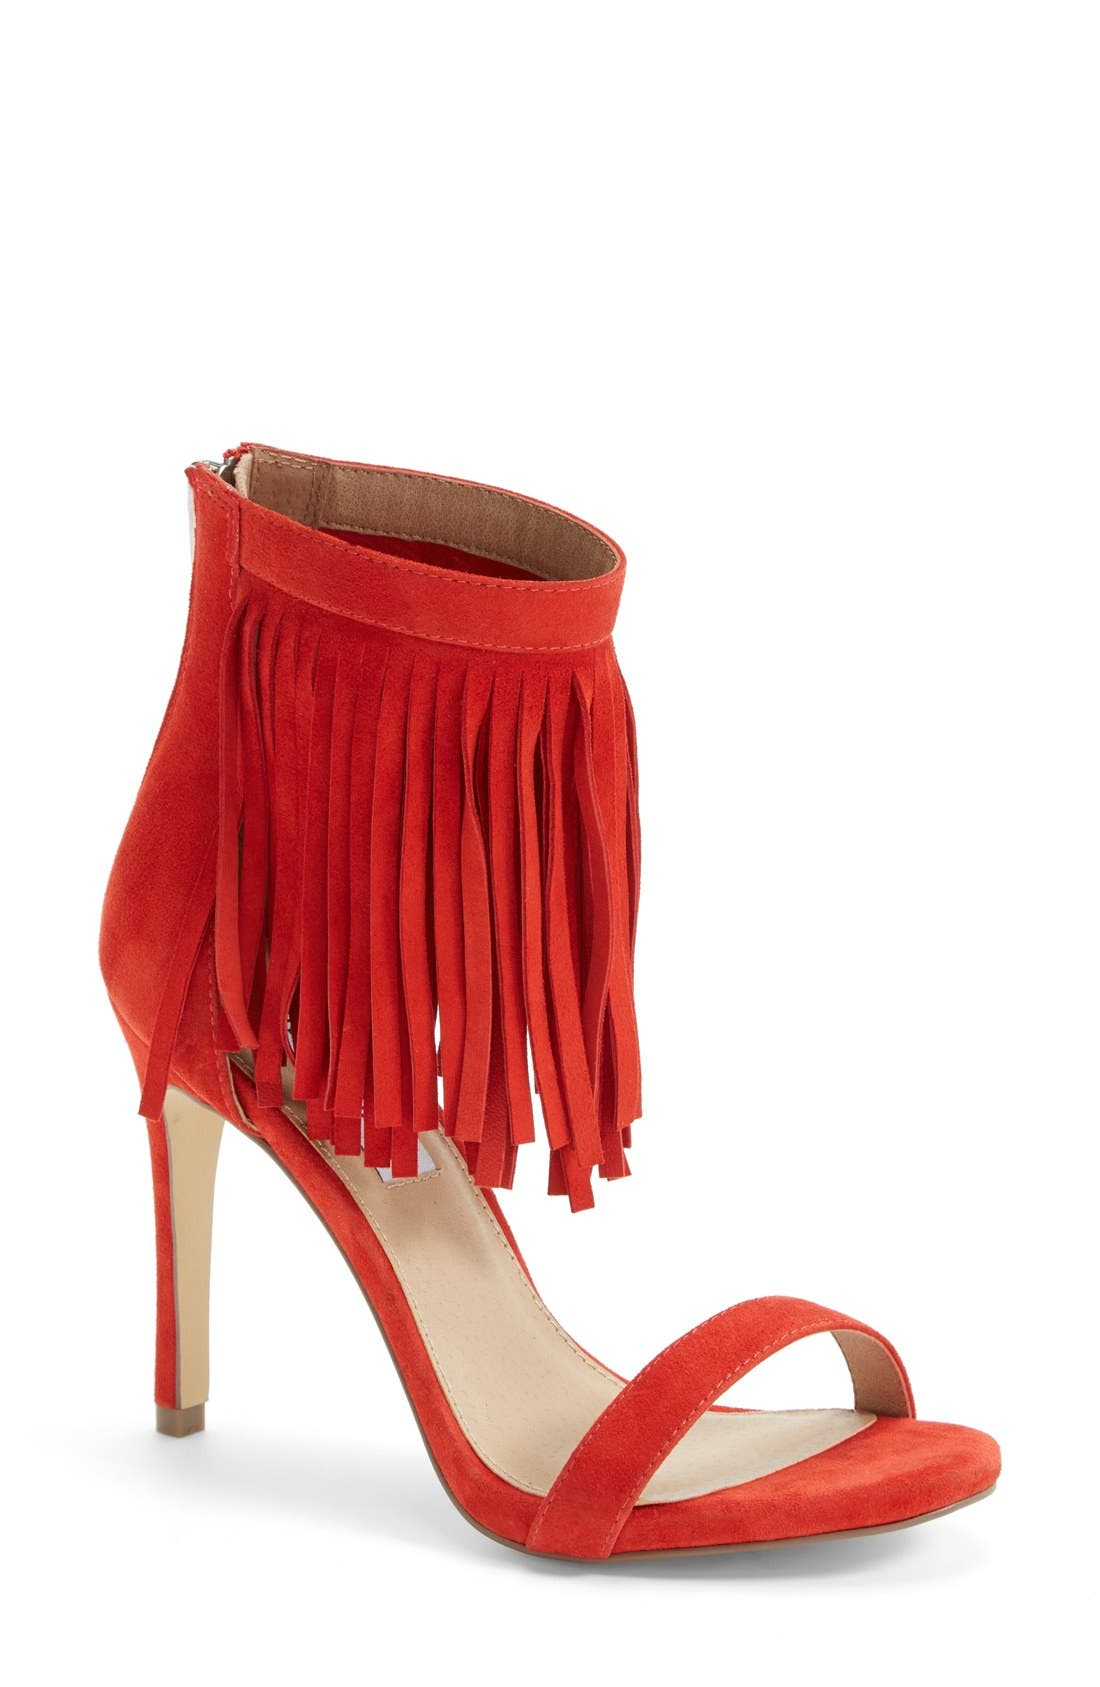 'Staarz' Ankle Fringe Sandal,                         Main,                         color, Coral Suede